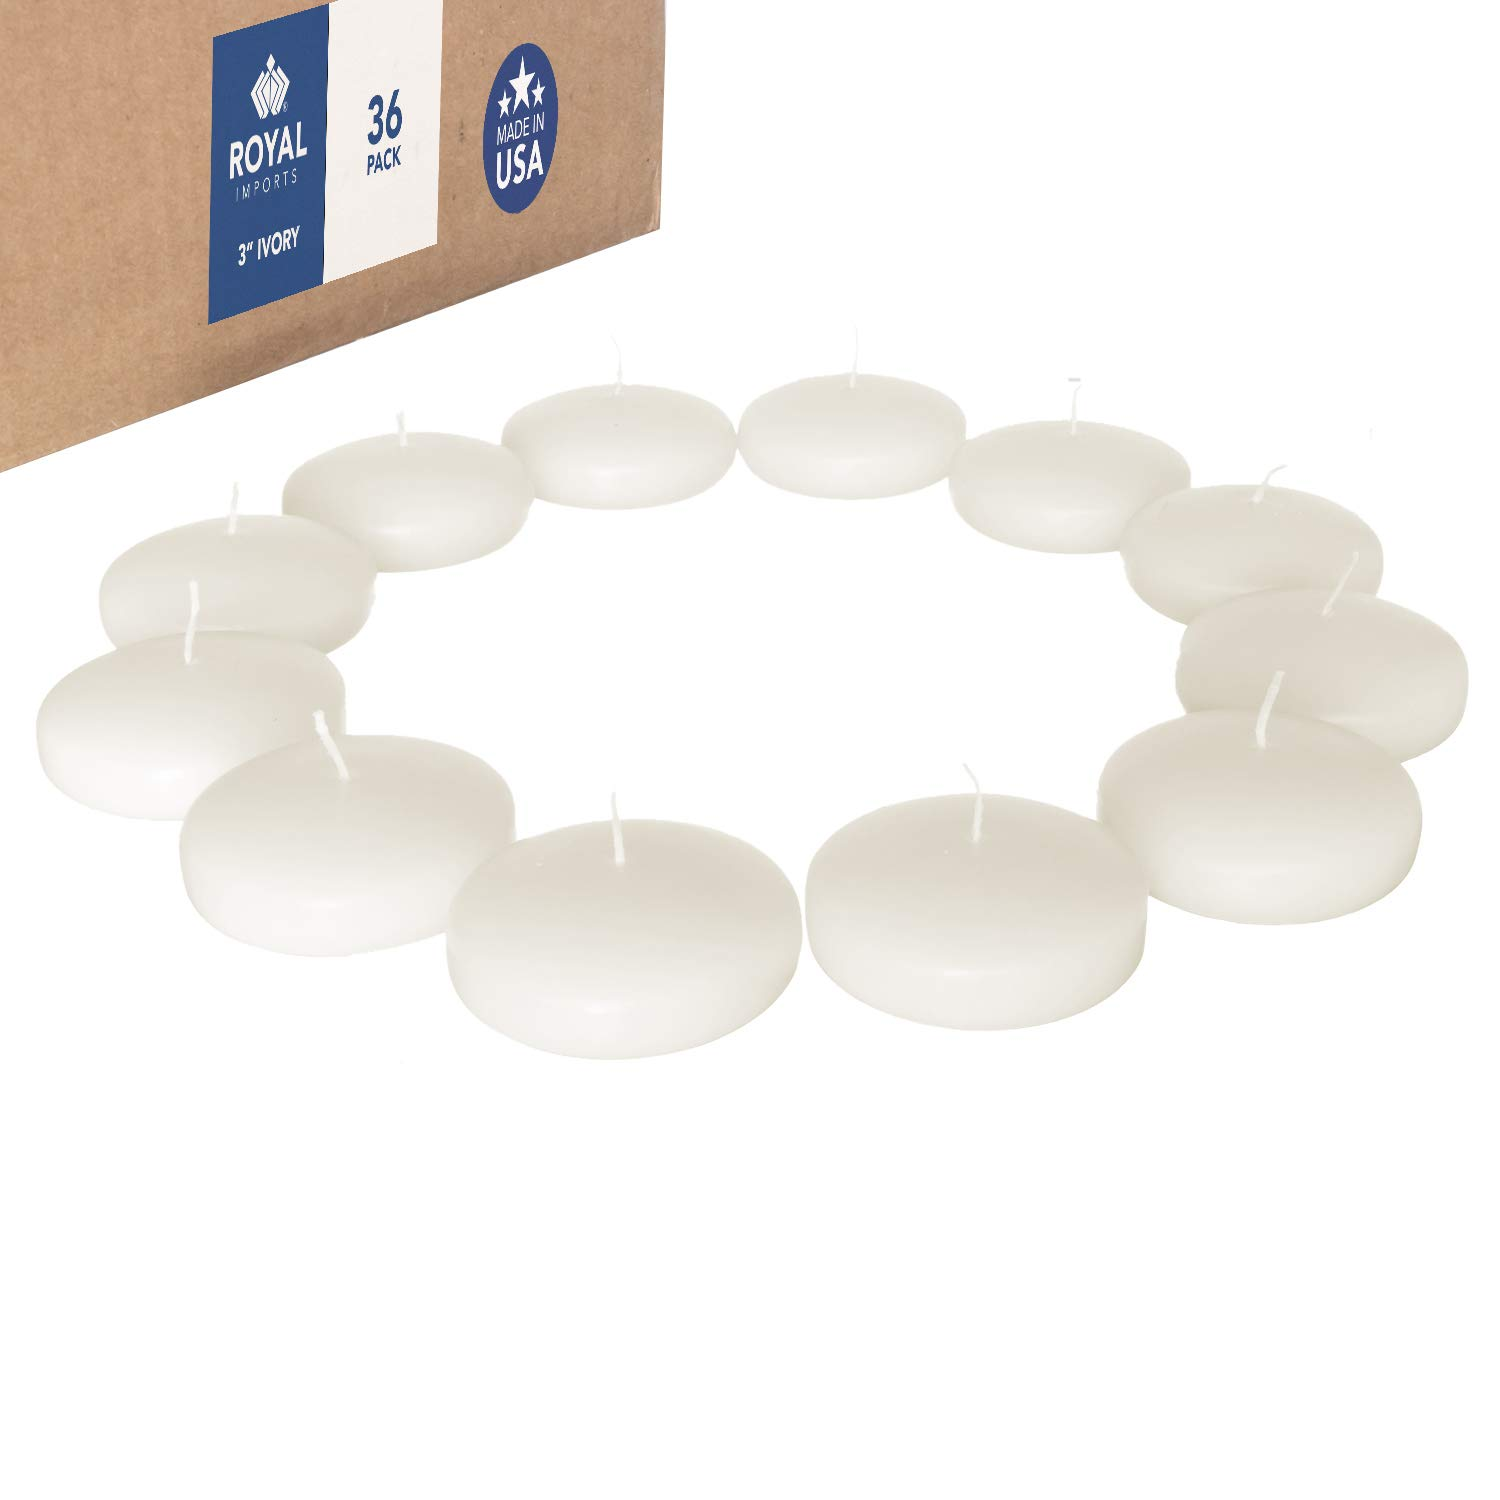 Royal Imports Floating disc Candles for Wedding, Birthday, Holiday & Home Decoration, 3 Inch, Ivory Wax, Set of 36